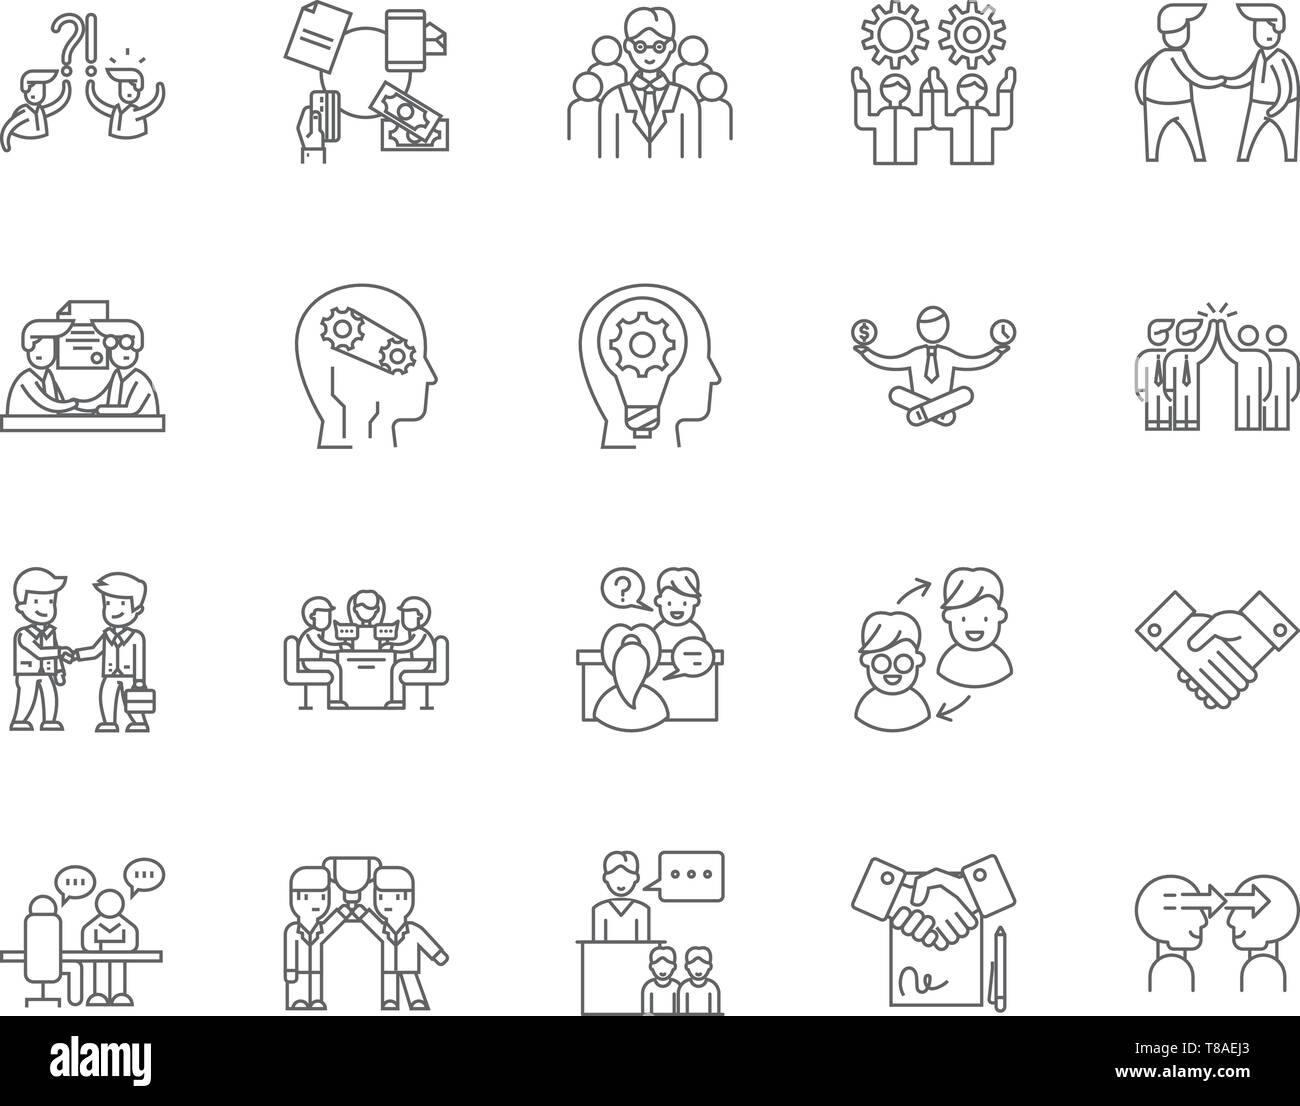 Commitment line icons, signs, vector set, outline illustration concept  Stock Vector